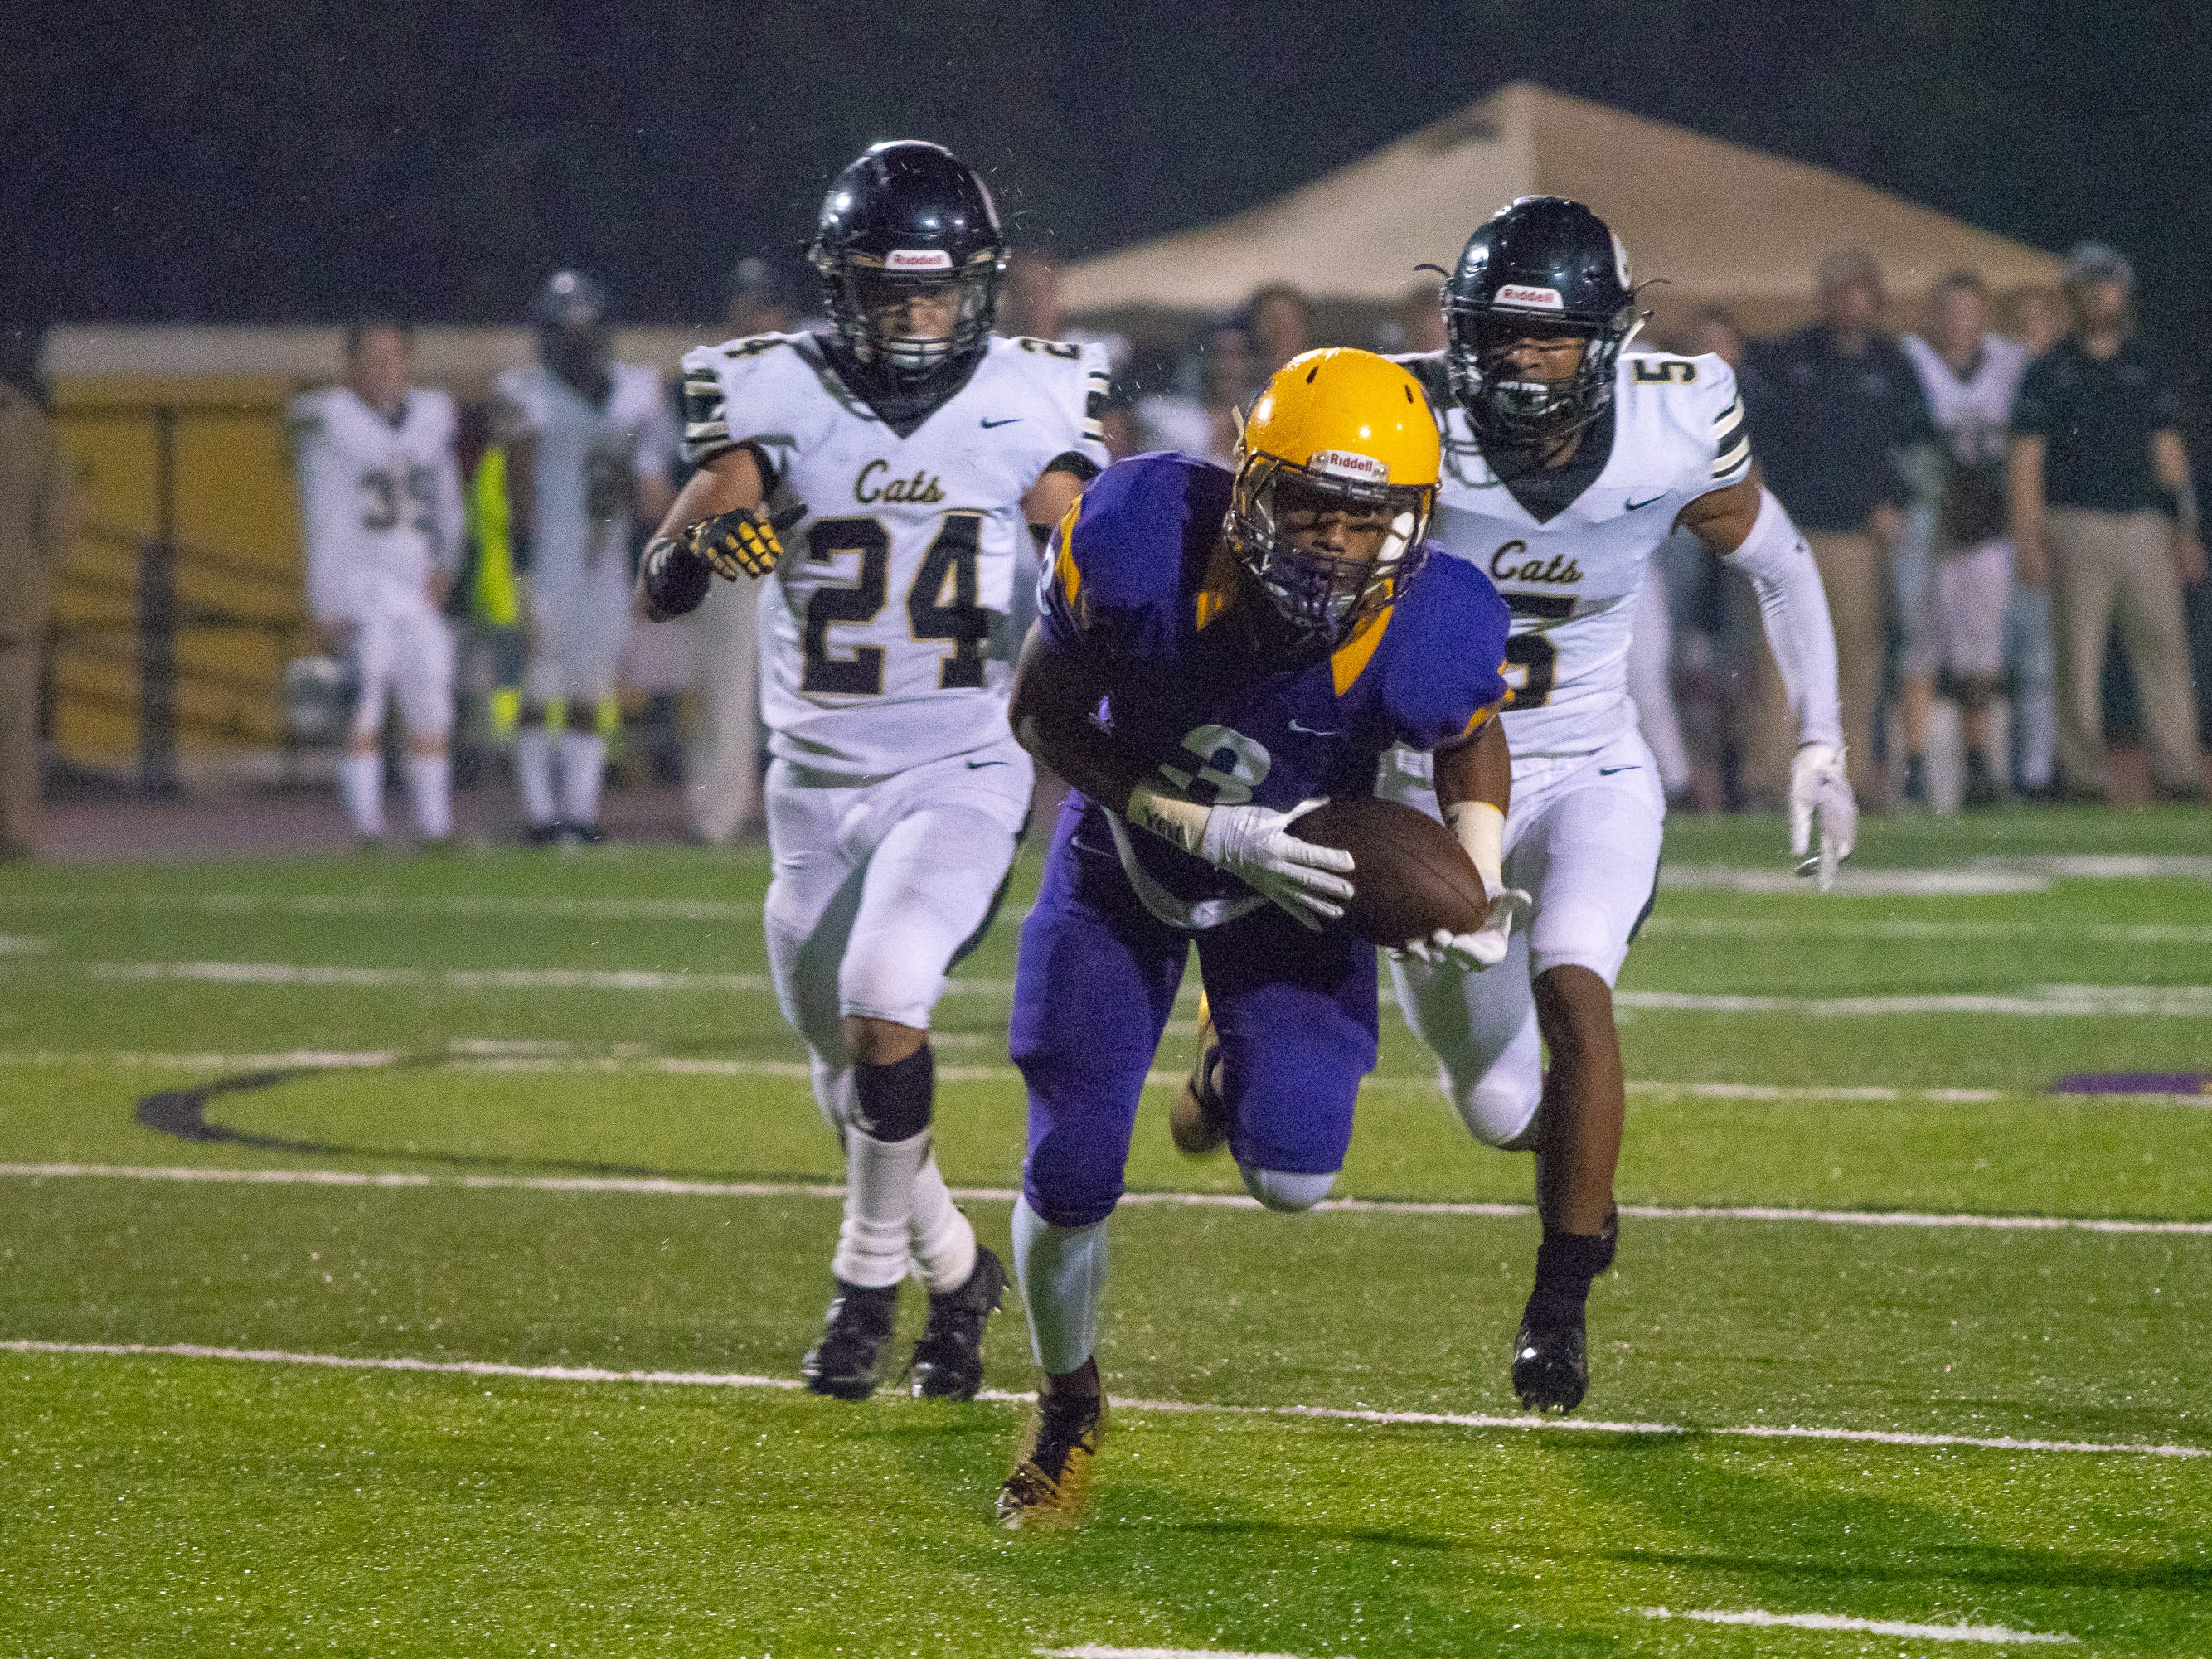 St. Martinville's Jamel Fontenette catches a pass downfield as the St. Martinville Tigers take on the Leesville Wampus Cats at St. Martinville High School on Nov. 23, 2018.